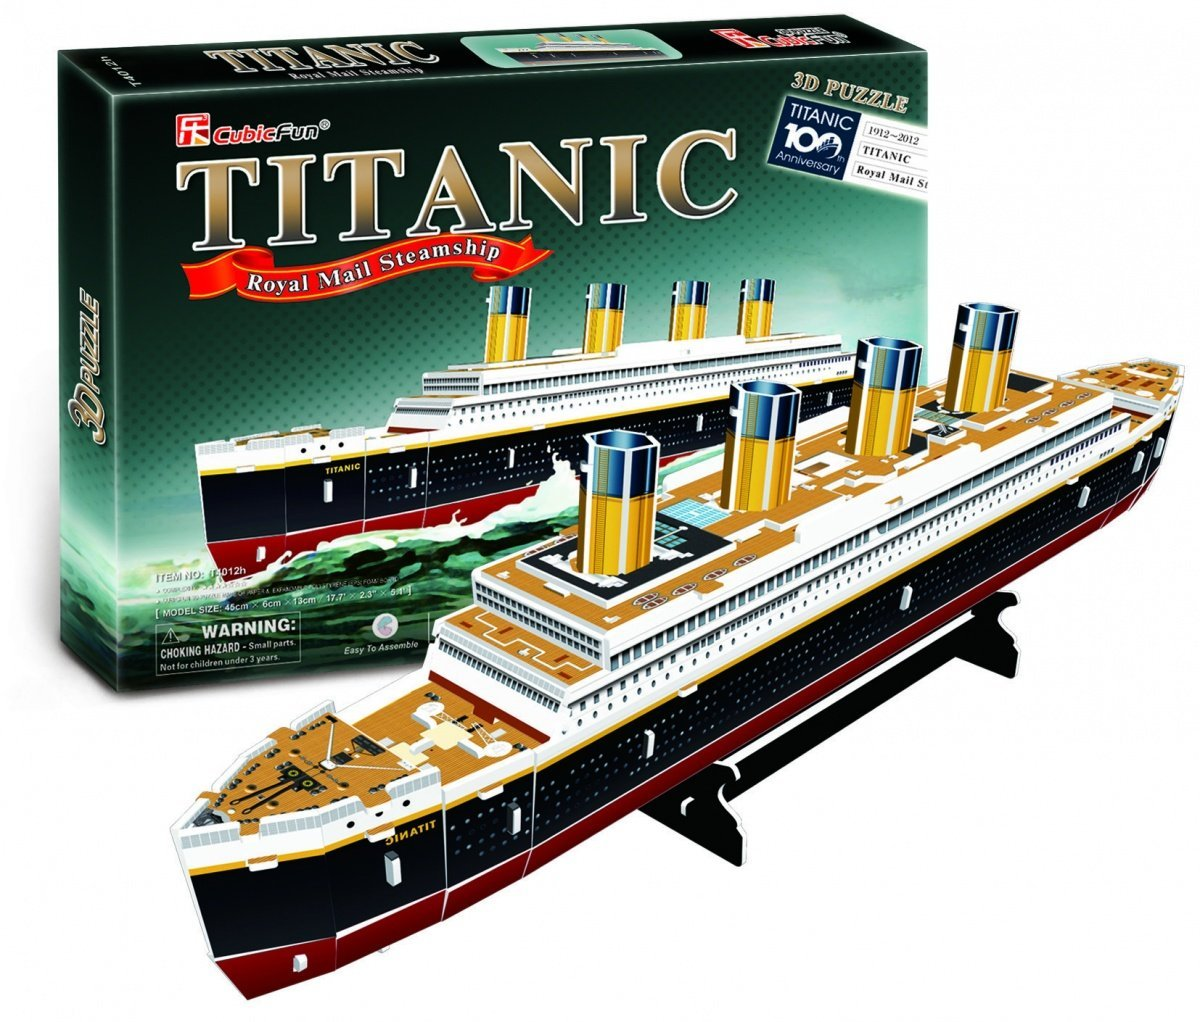 Cubic Fun RMS Titanic Ship 3D Puzzle Small 35 Pieces, 35 Pieces By CubicFun by